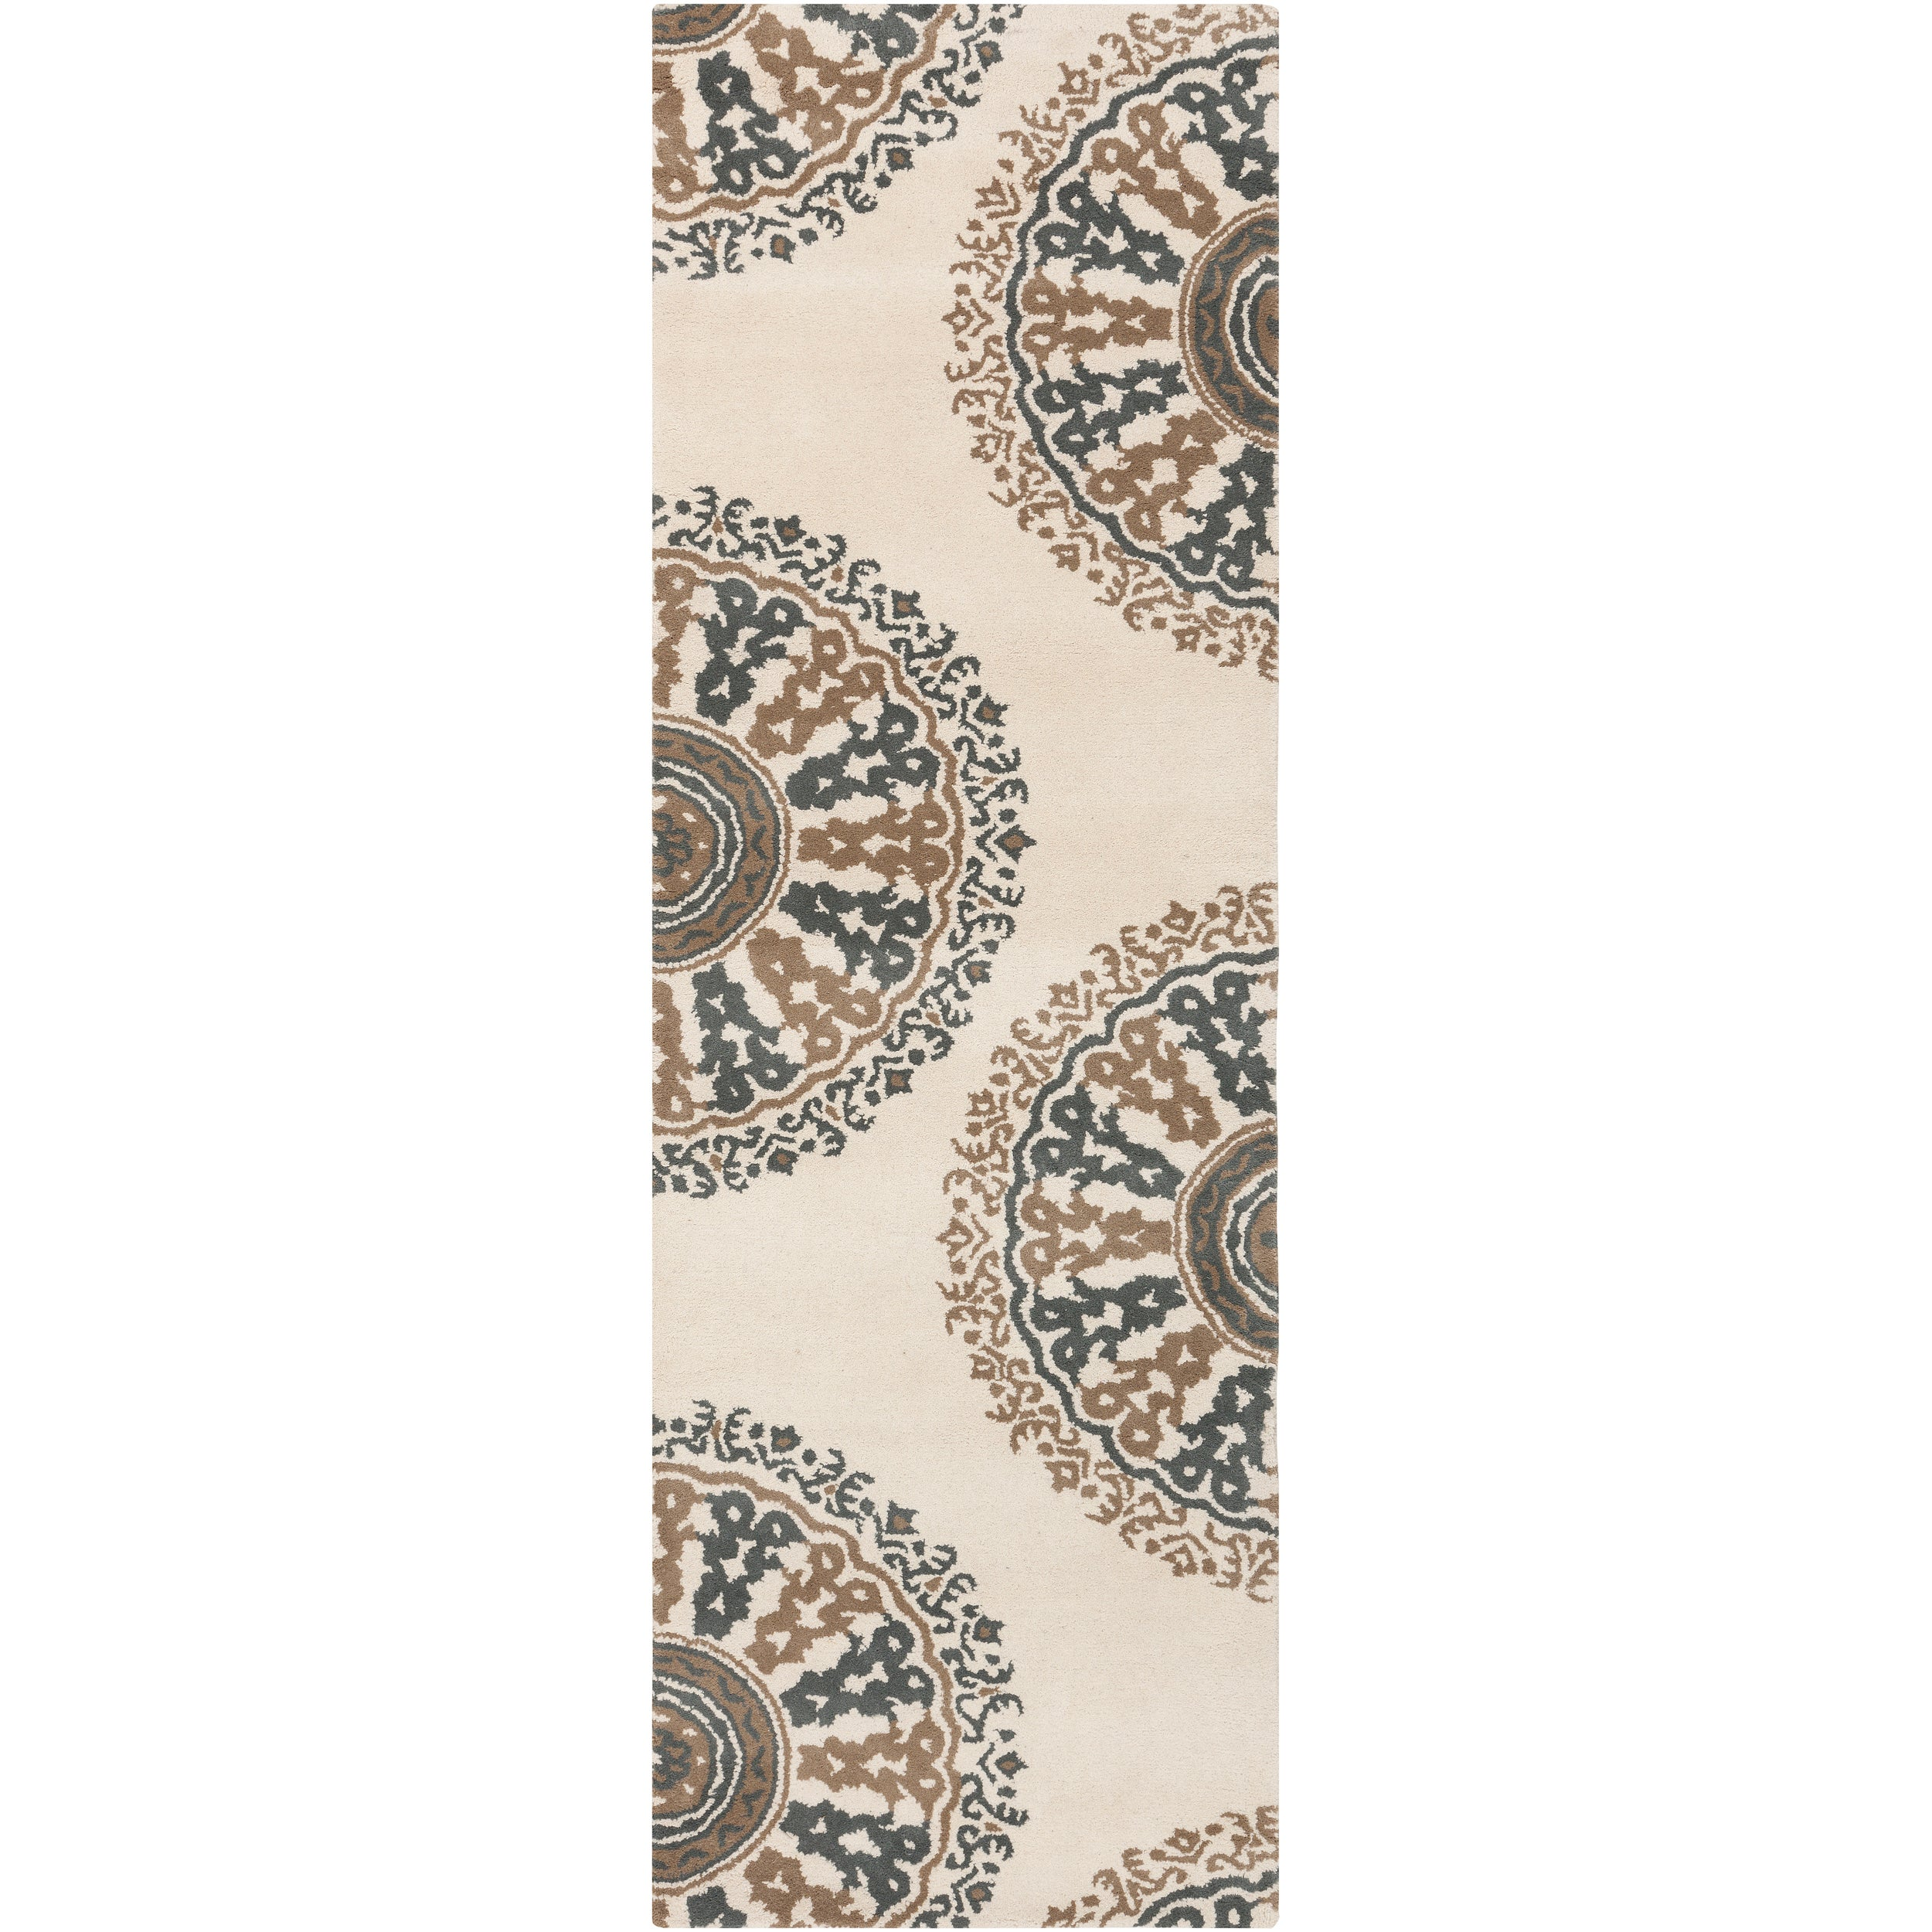 Hand-tufted Ivory New York Ave Geometric Medallion Wool Rug (2'6 x 8')